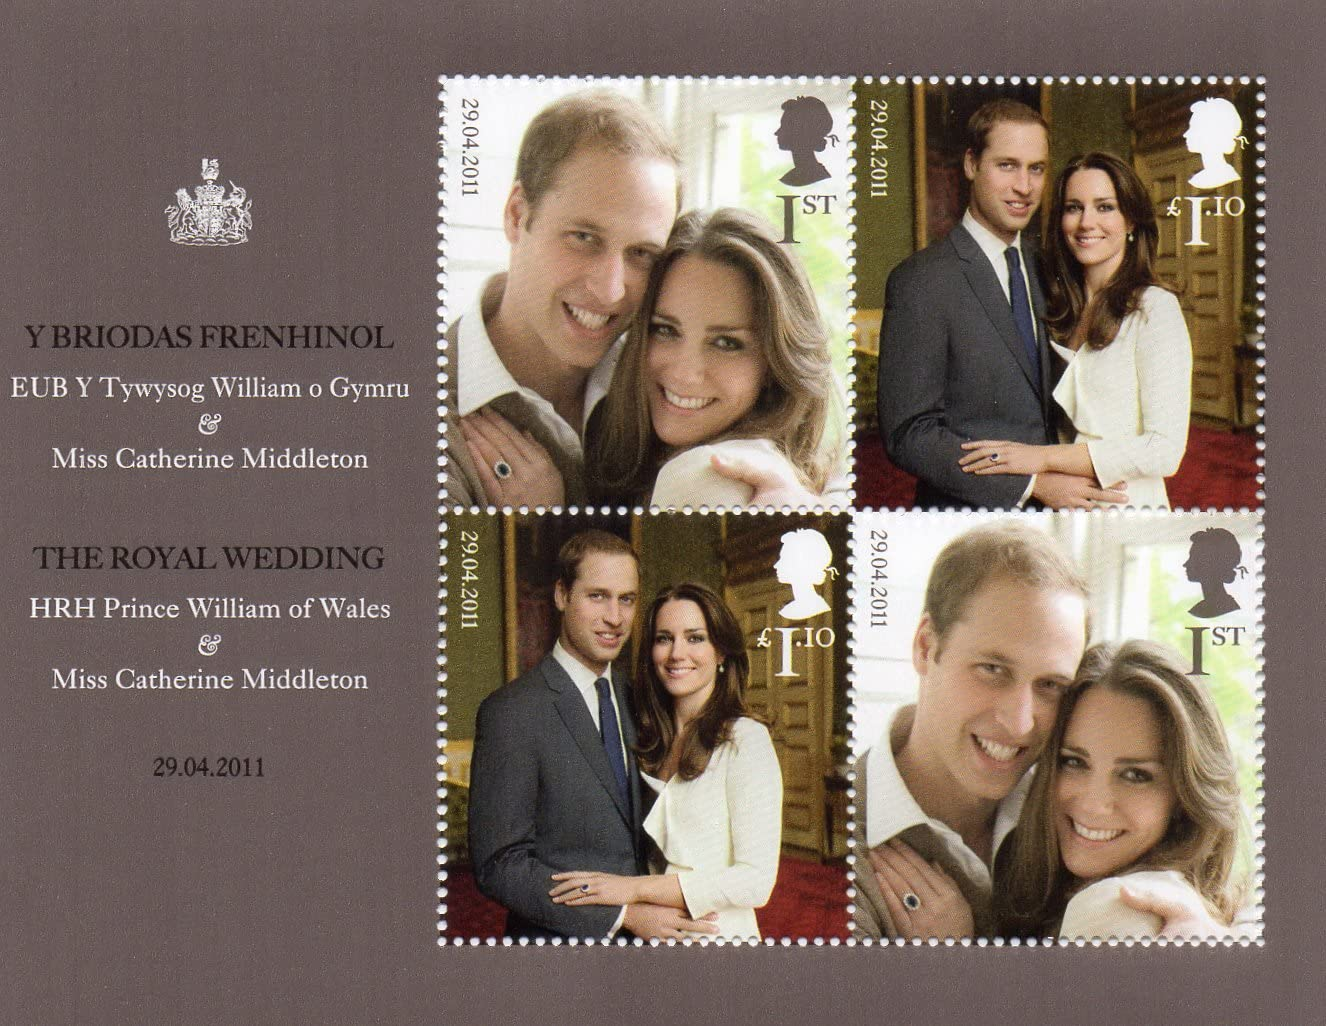 2011 William and Kate Royal Wedding Stamps in Presentation pack by Royal Mail